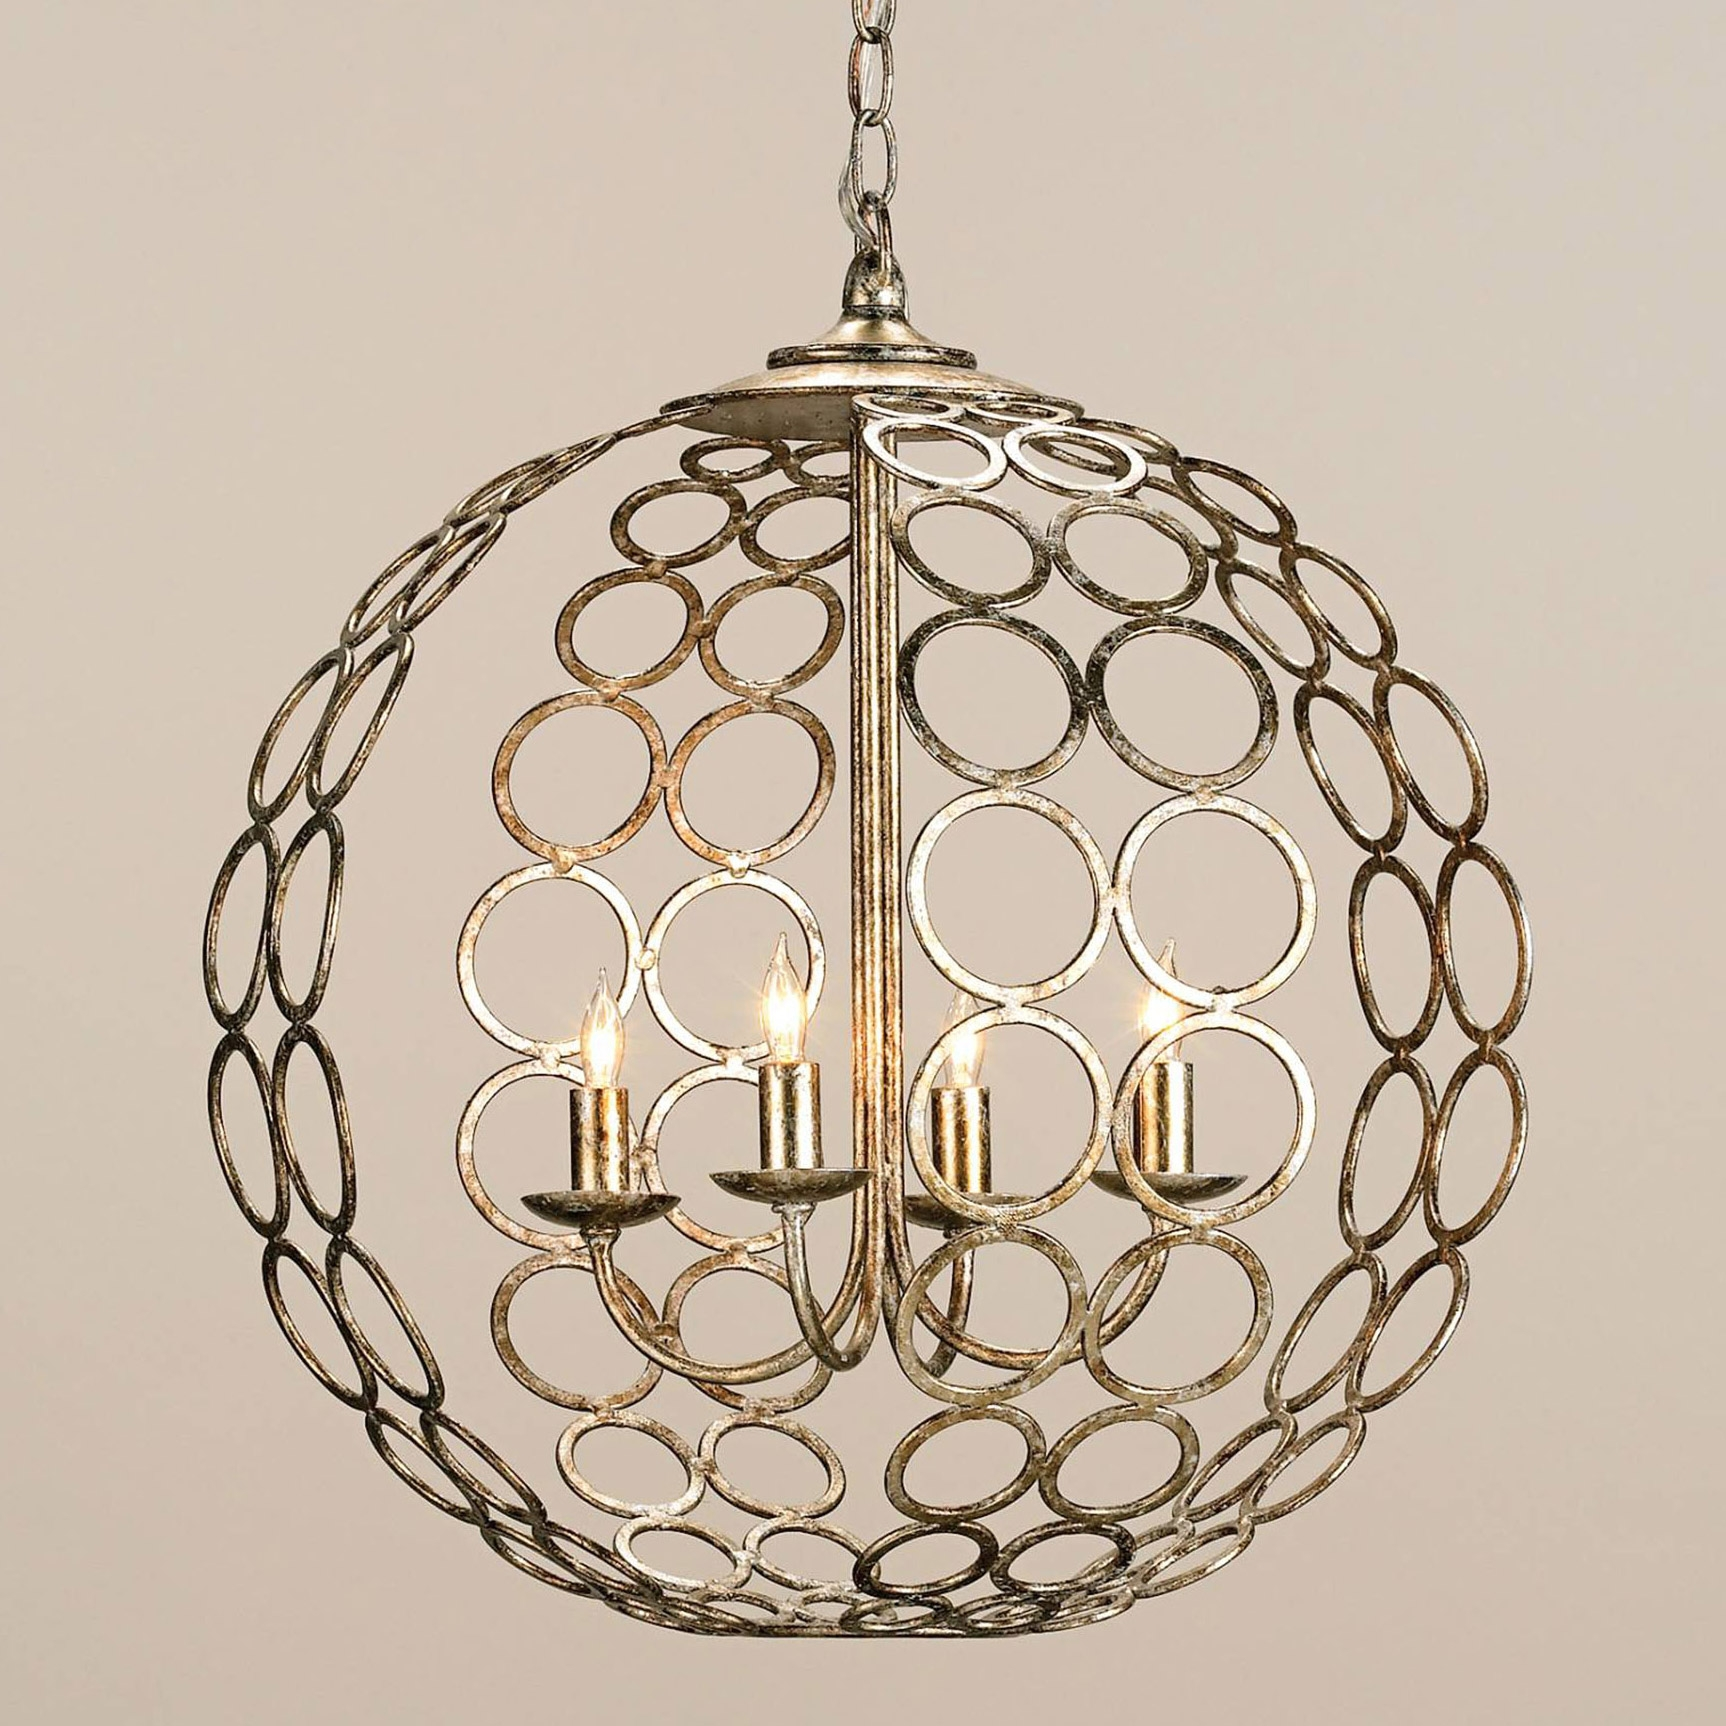 Chandelier Astonishing Iron Orb Chandelier Ideas Amazing Iron Throughout Metal Ball Candle Chandeliers (Image 13 of 25)